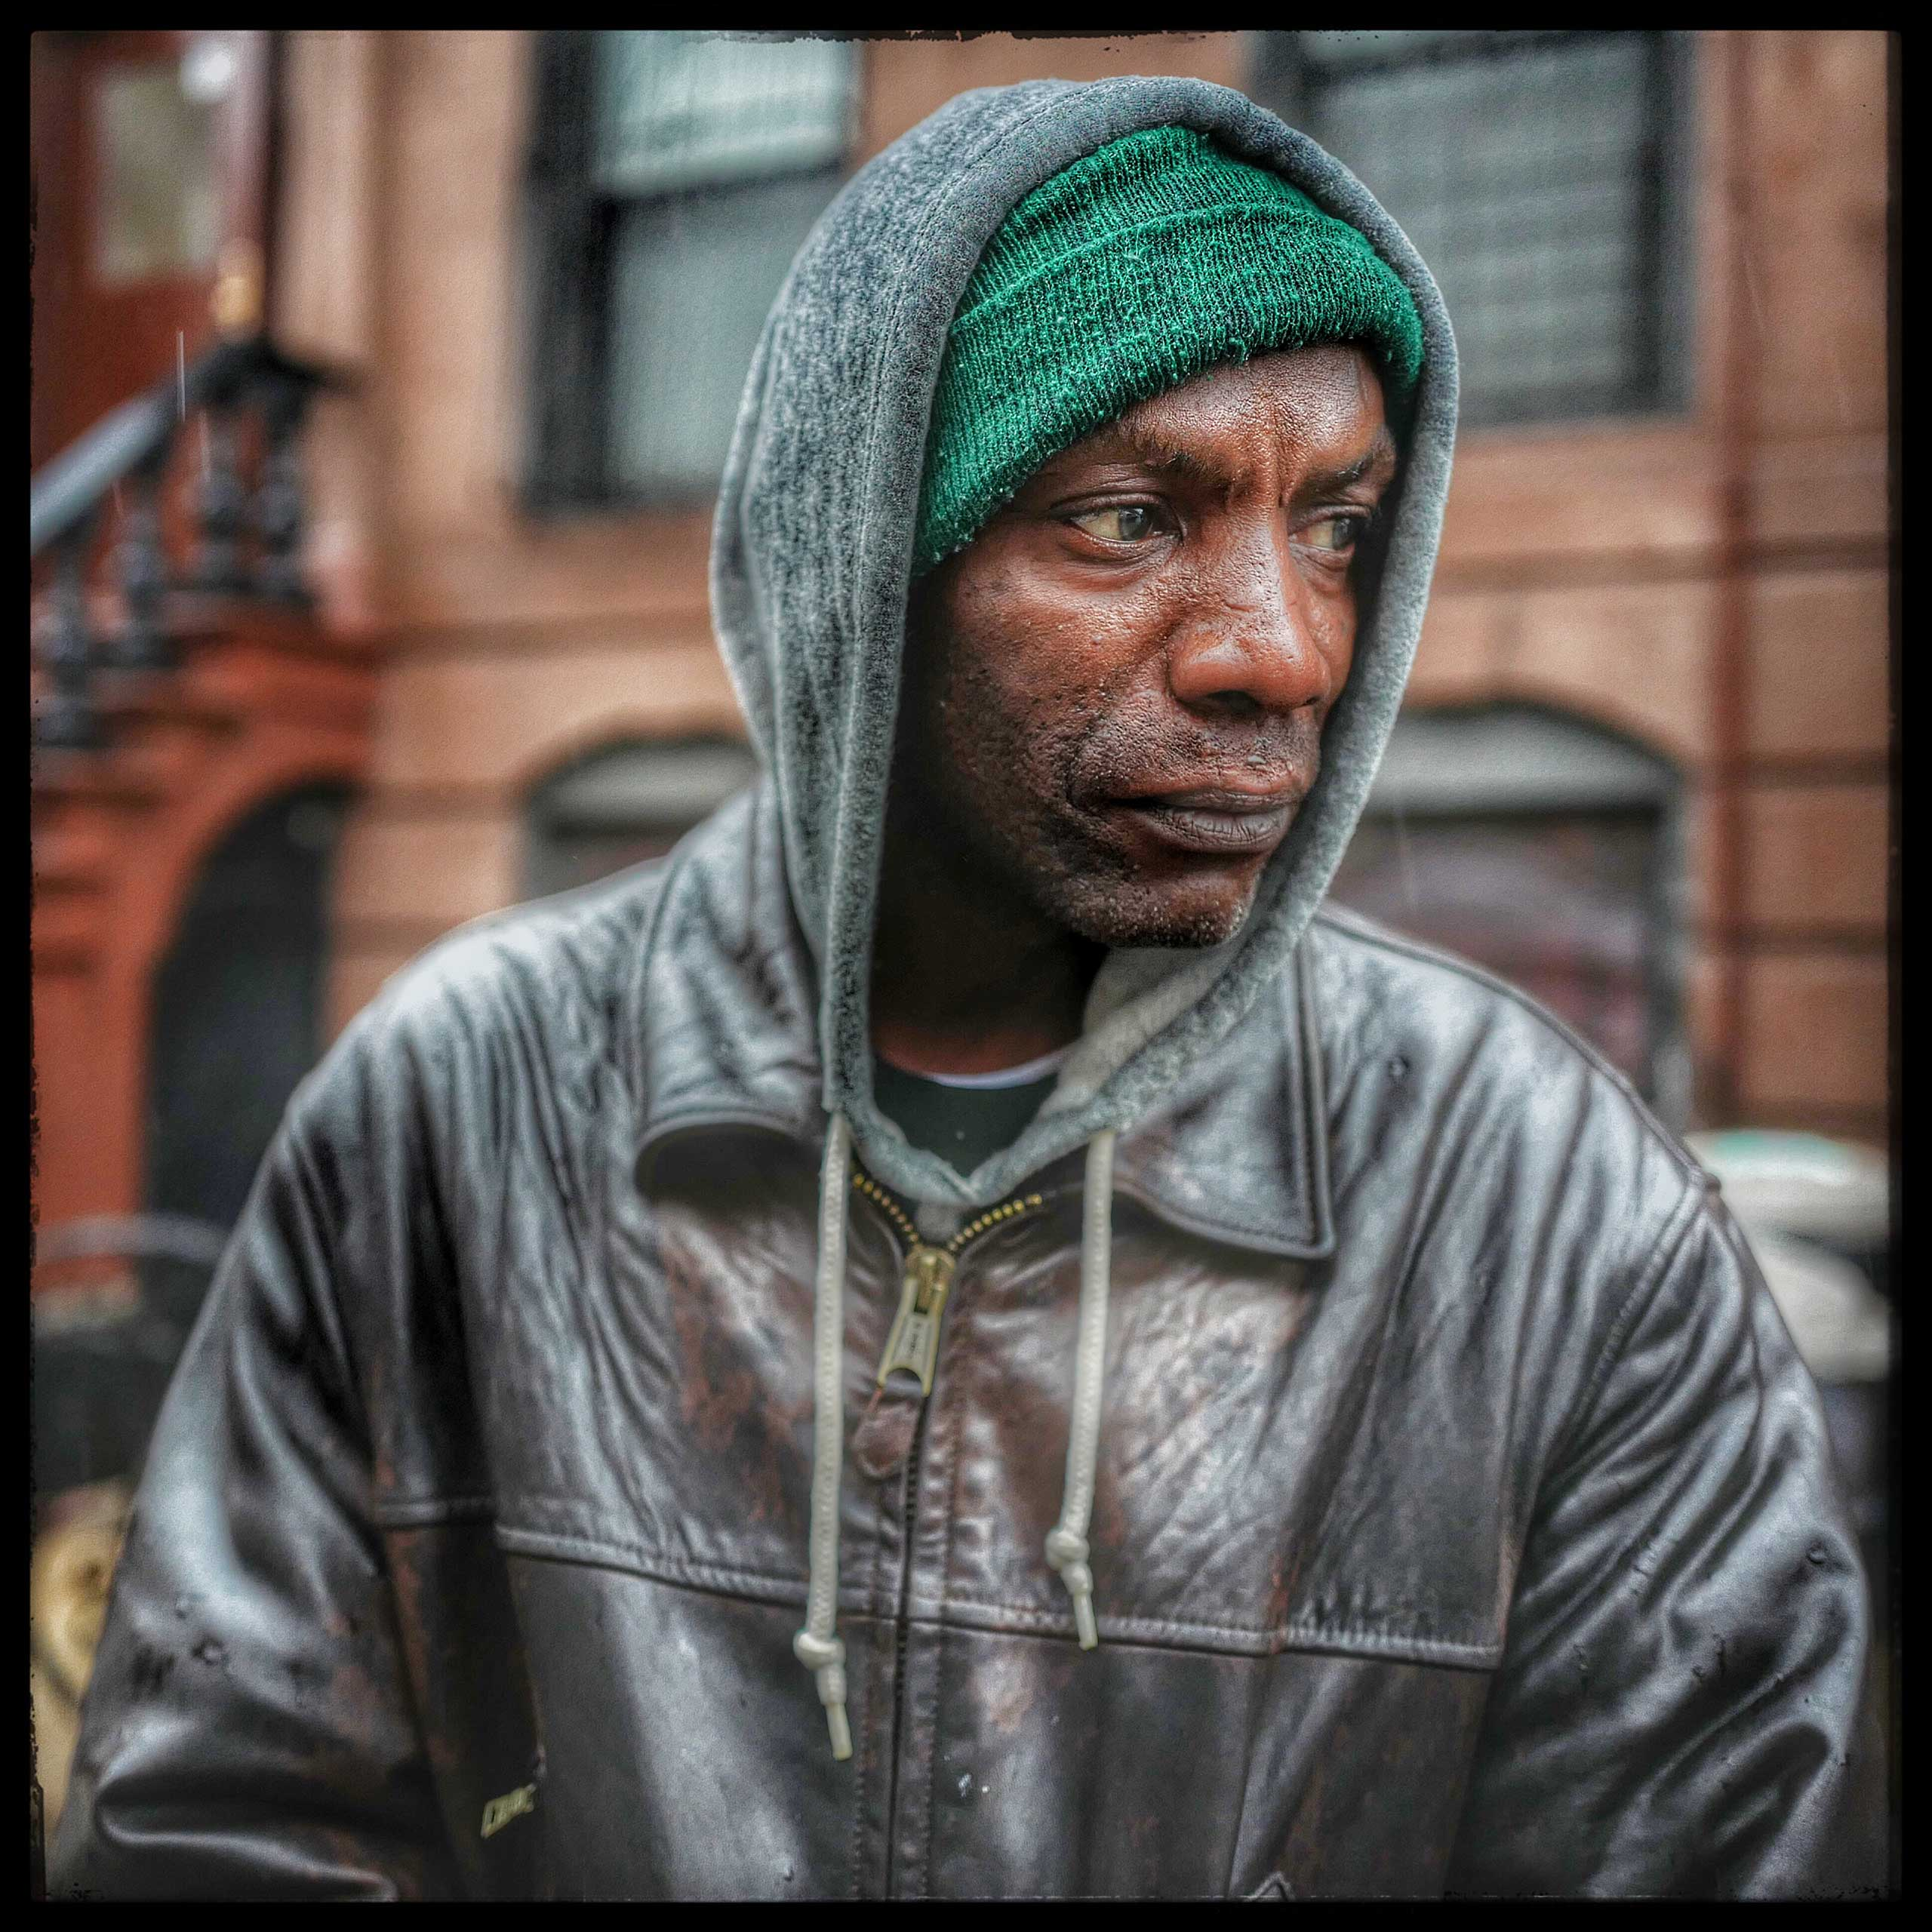 Davone struggles with finding steady work and drug abuse. He is usually at the corner of Bedford and Atlantic Ave asking motorists for money to feed his habit or his hunger.